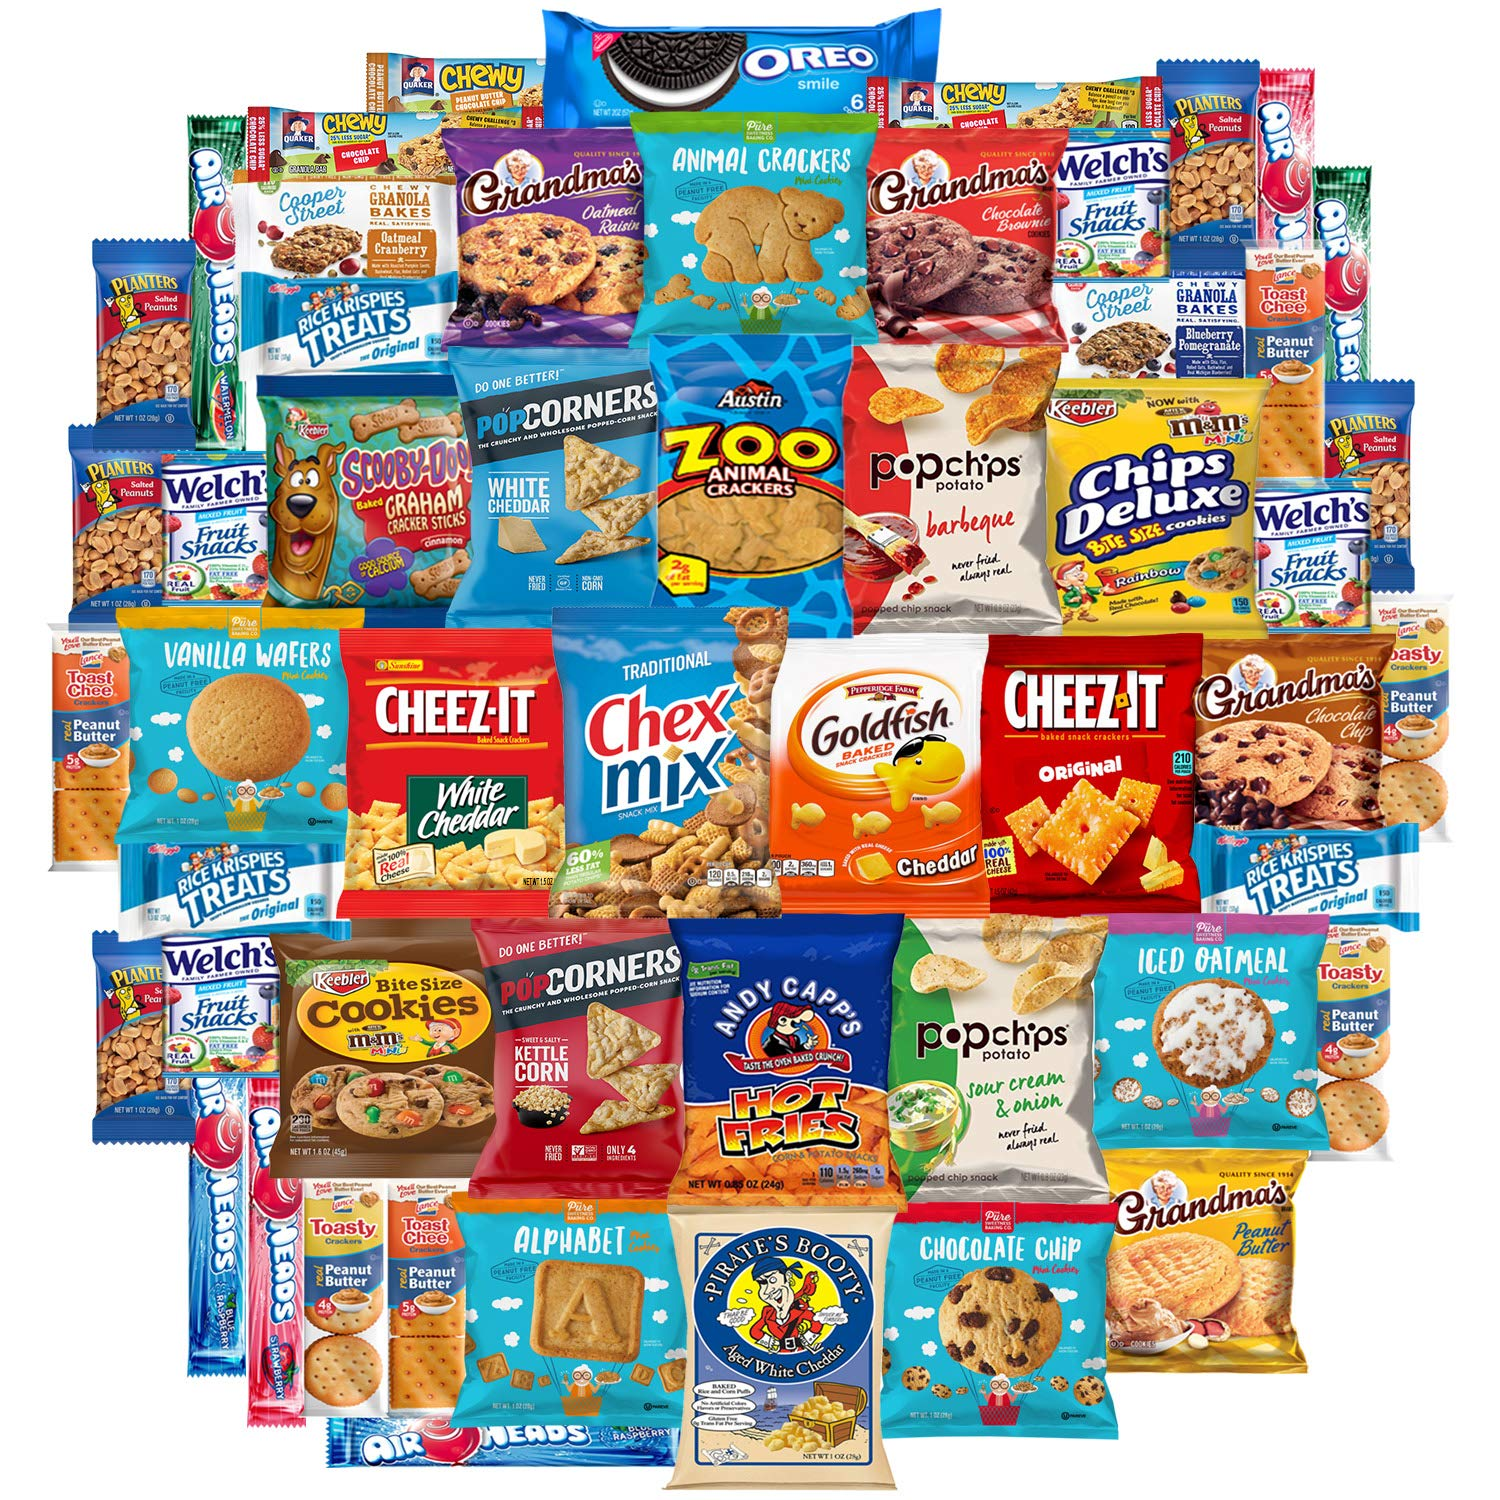 Snack Chest Munchies Care Package Chips Cookies & Candy Includes Goldfish, Oreos, Skittles, Sour Patch, m&m Cookie, Air Heads, Planters Peanuts, Rice Krispies & More (50 Count)